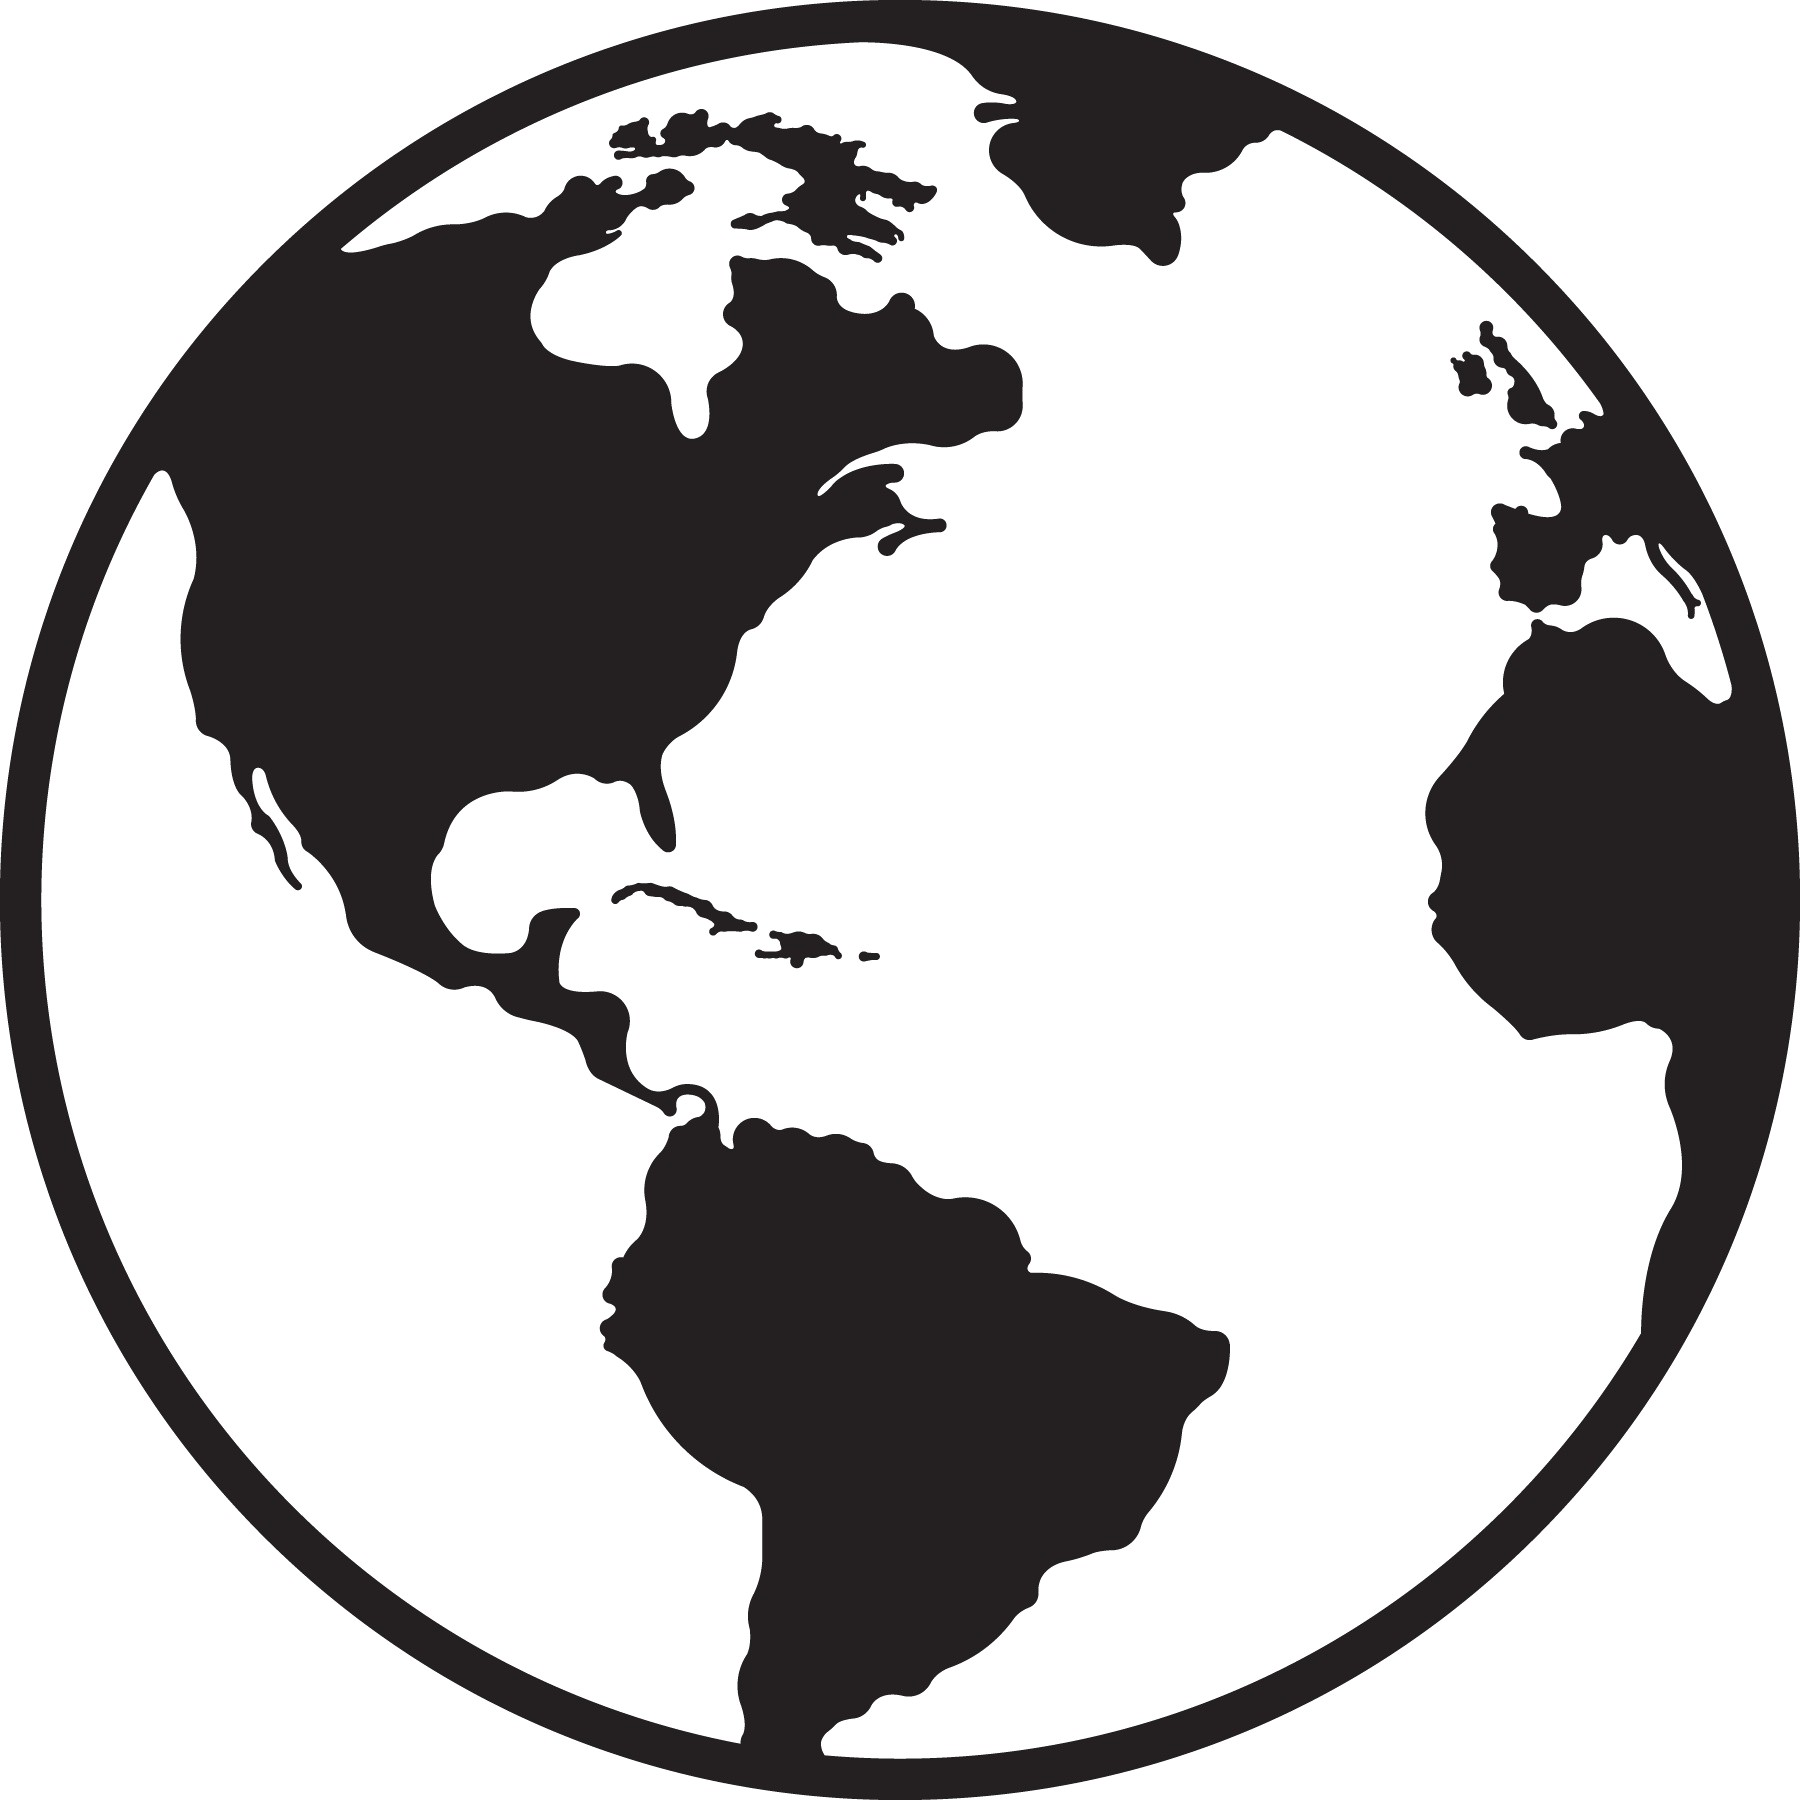 1800x1800 Earth Clipart Black And White 11 G Best Globe Vector Image For 15